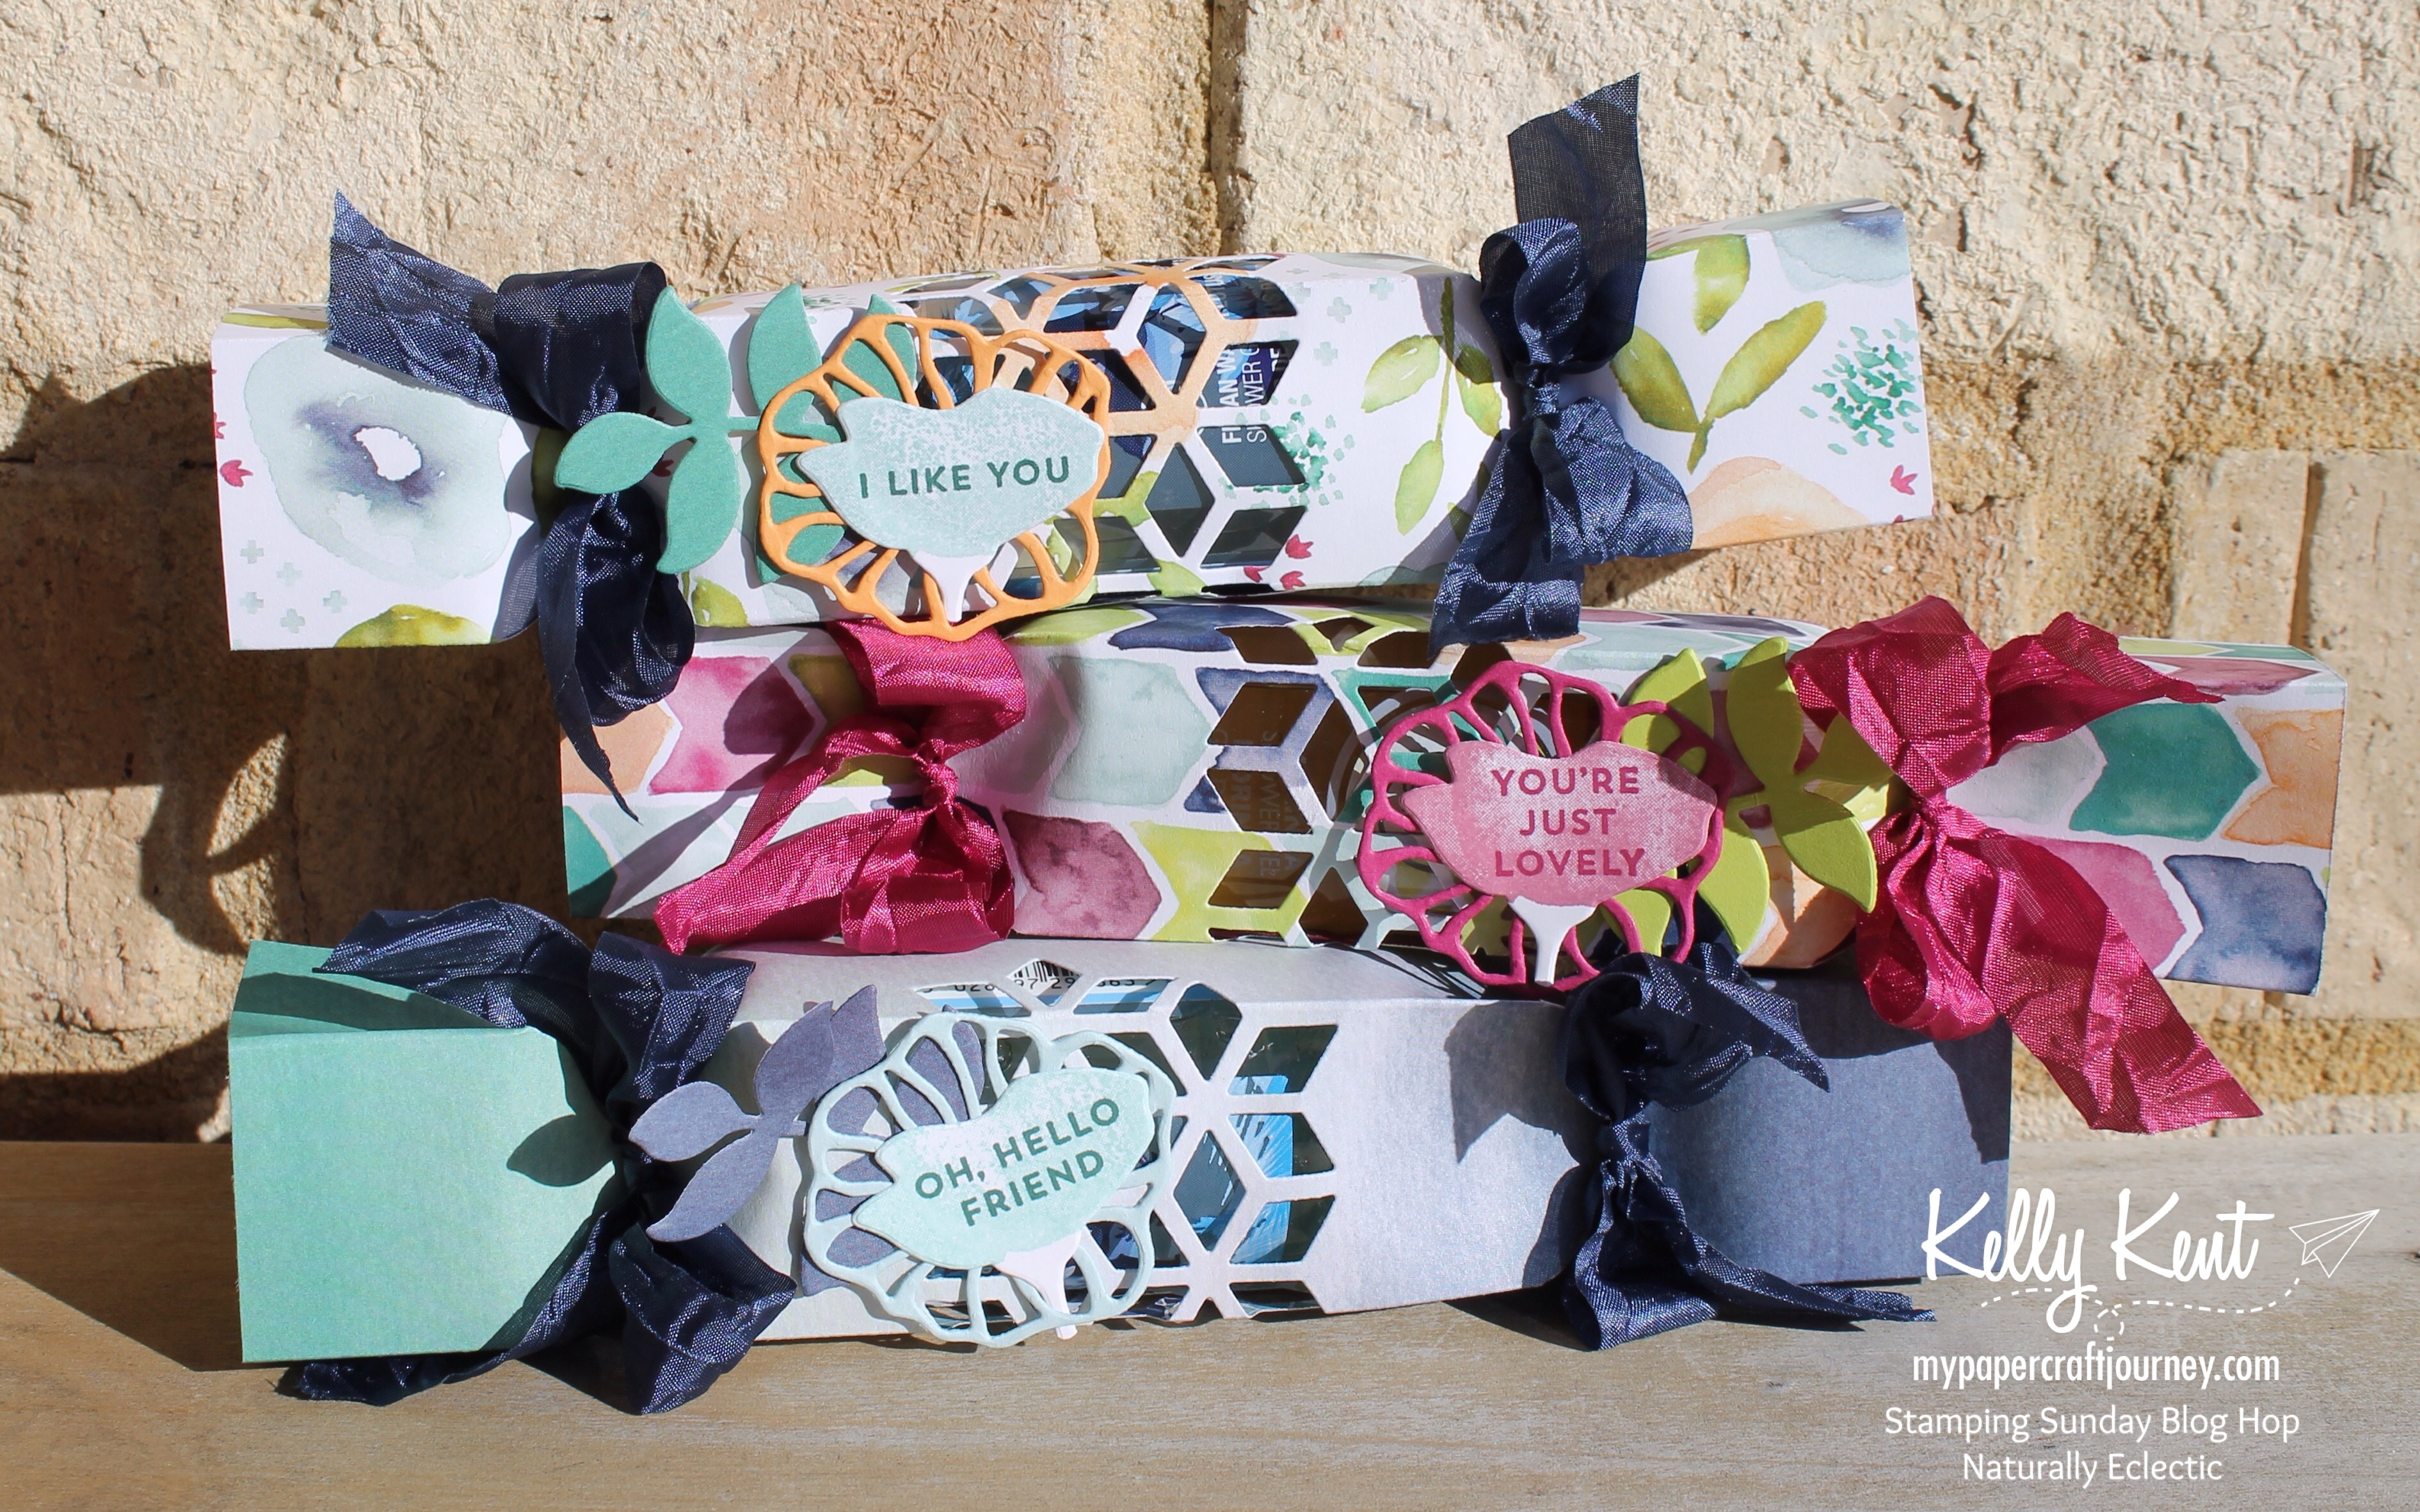 Stamping Sunday - Naturally Eclectic | kelly kent